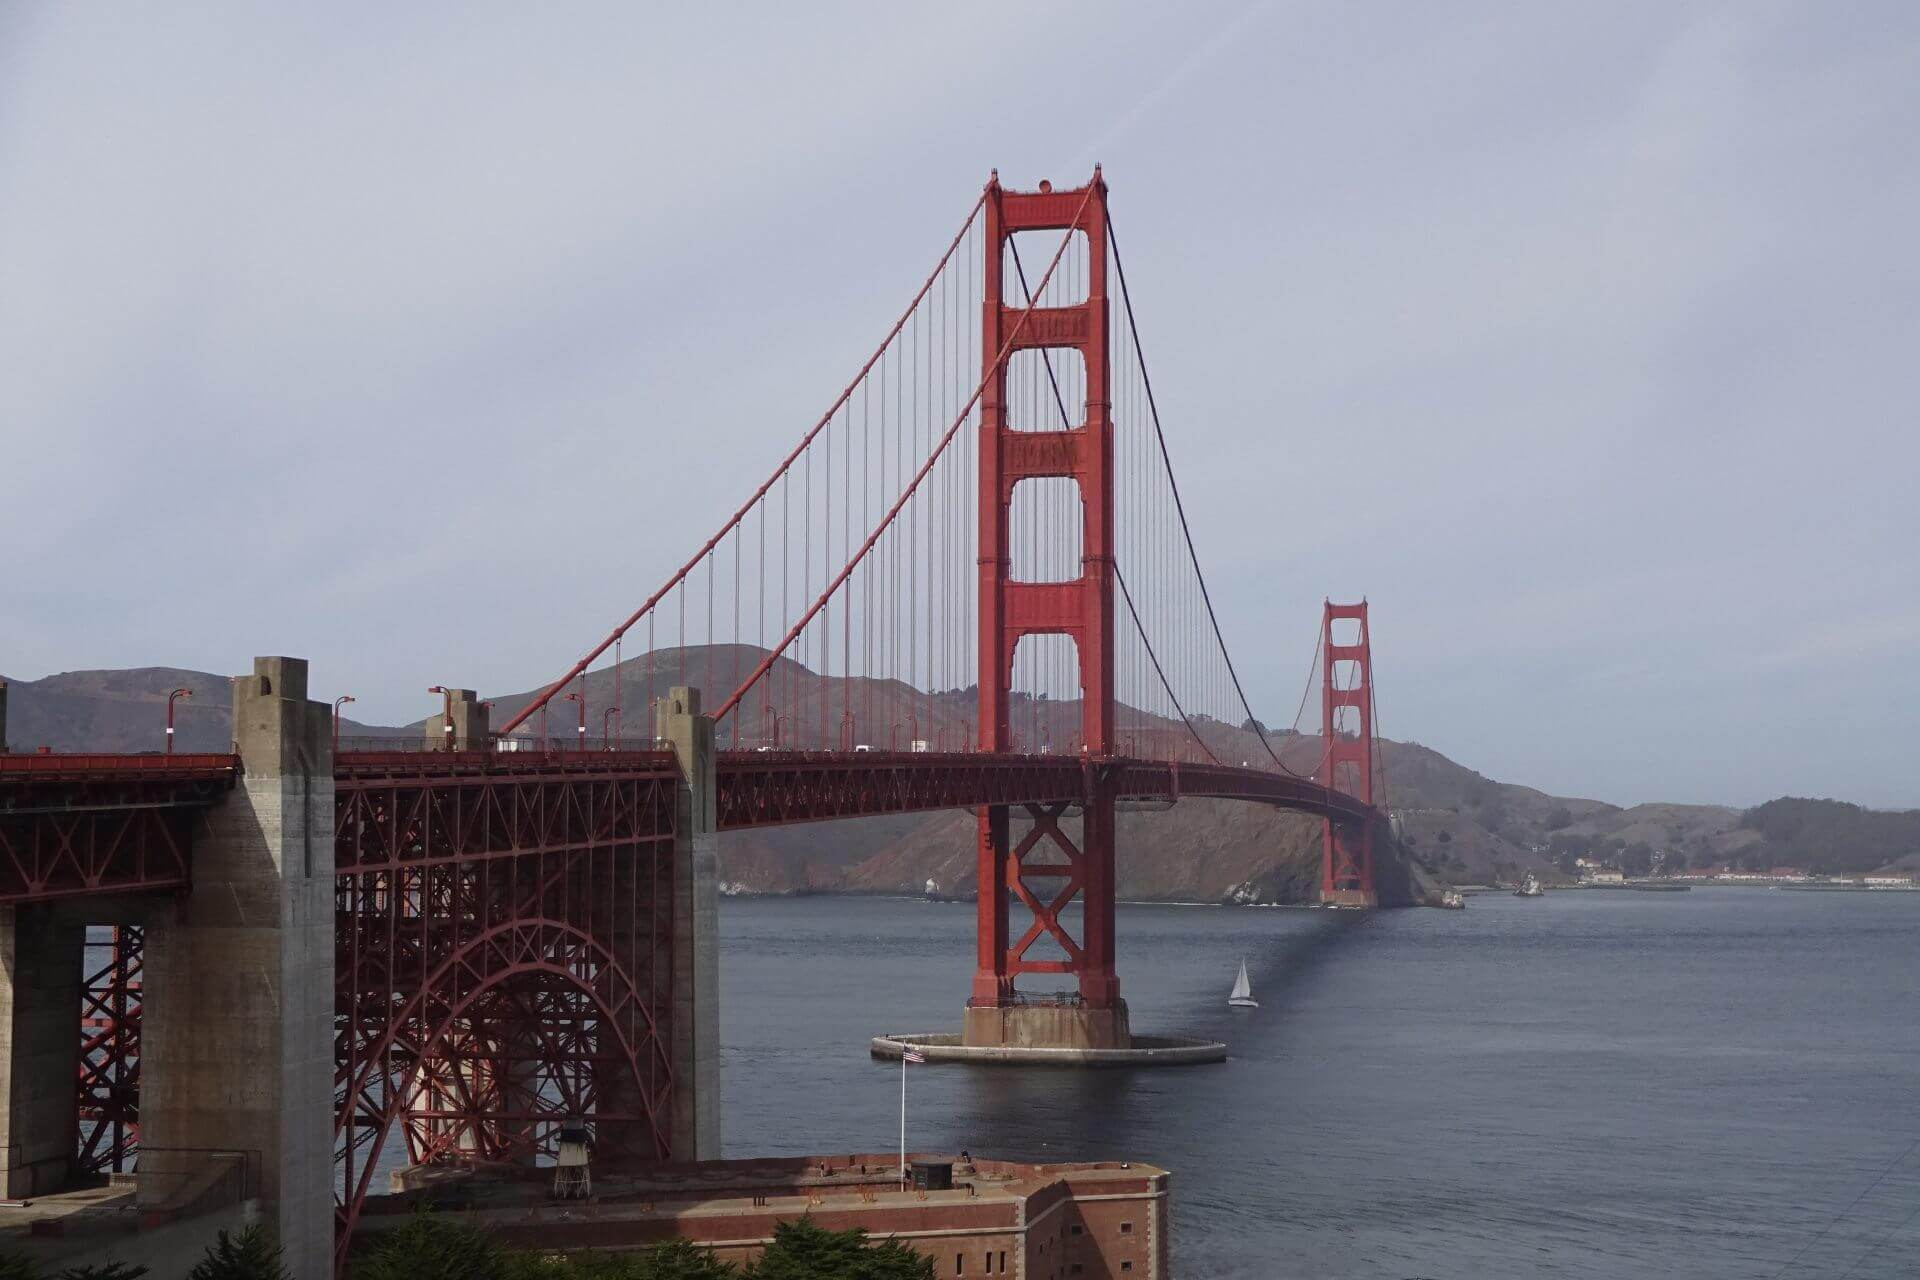 Die Golden Gate Bridge in International Orange. Bilder und Eindrücke aus San Francisco, California, United States.